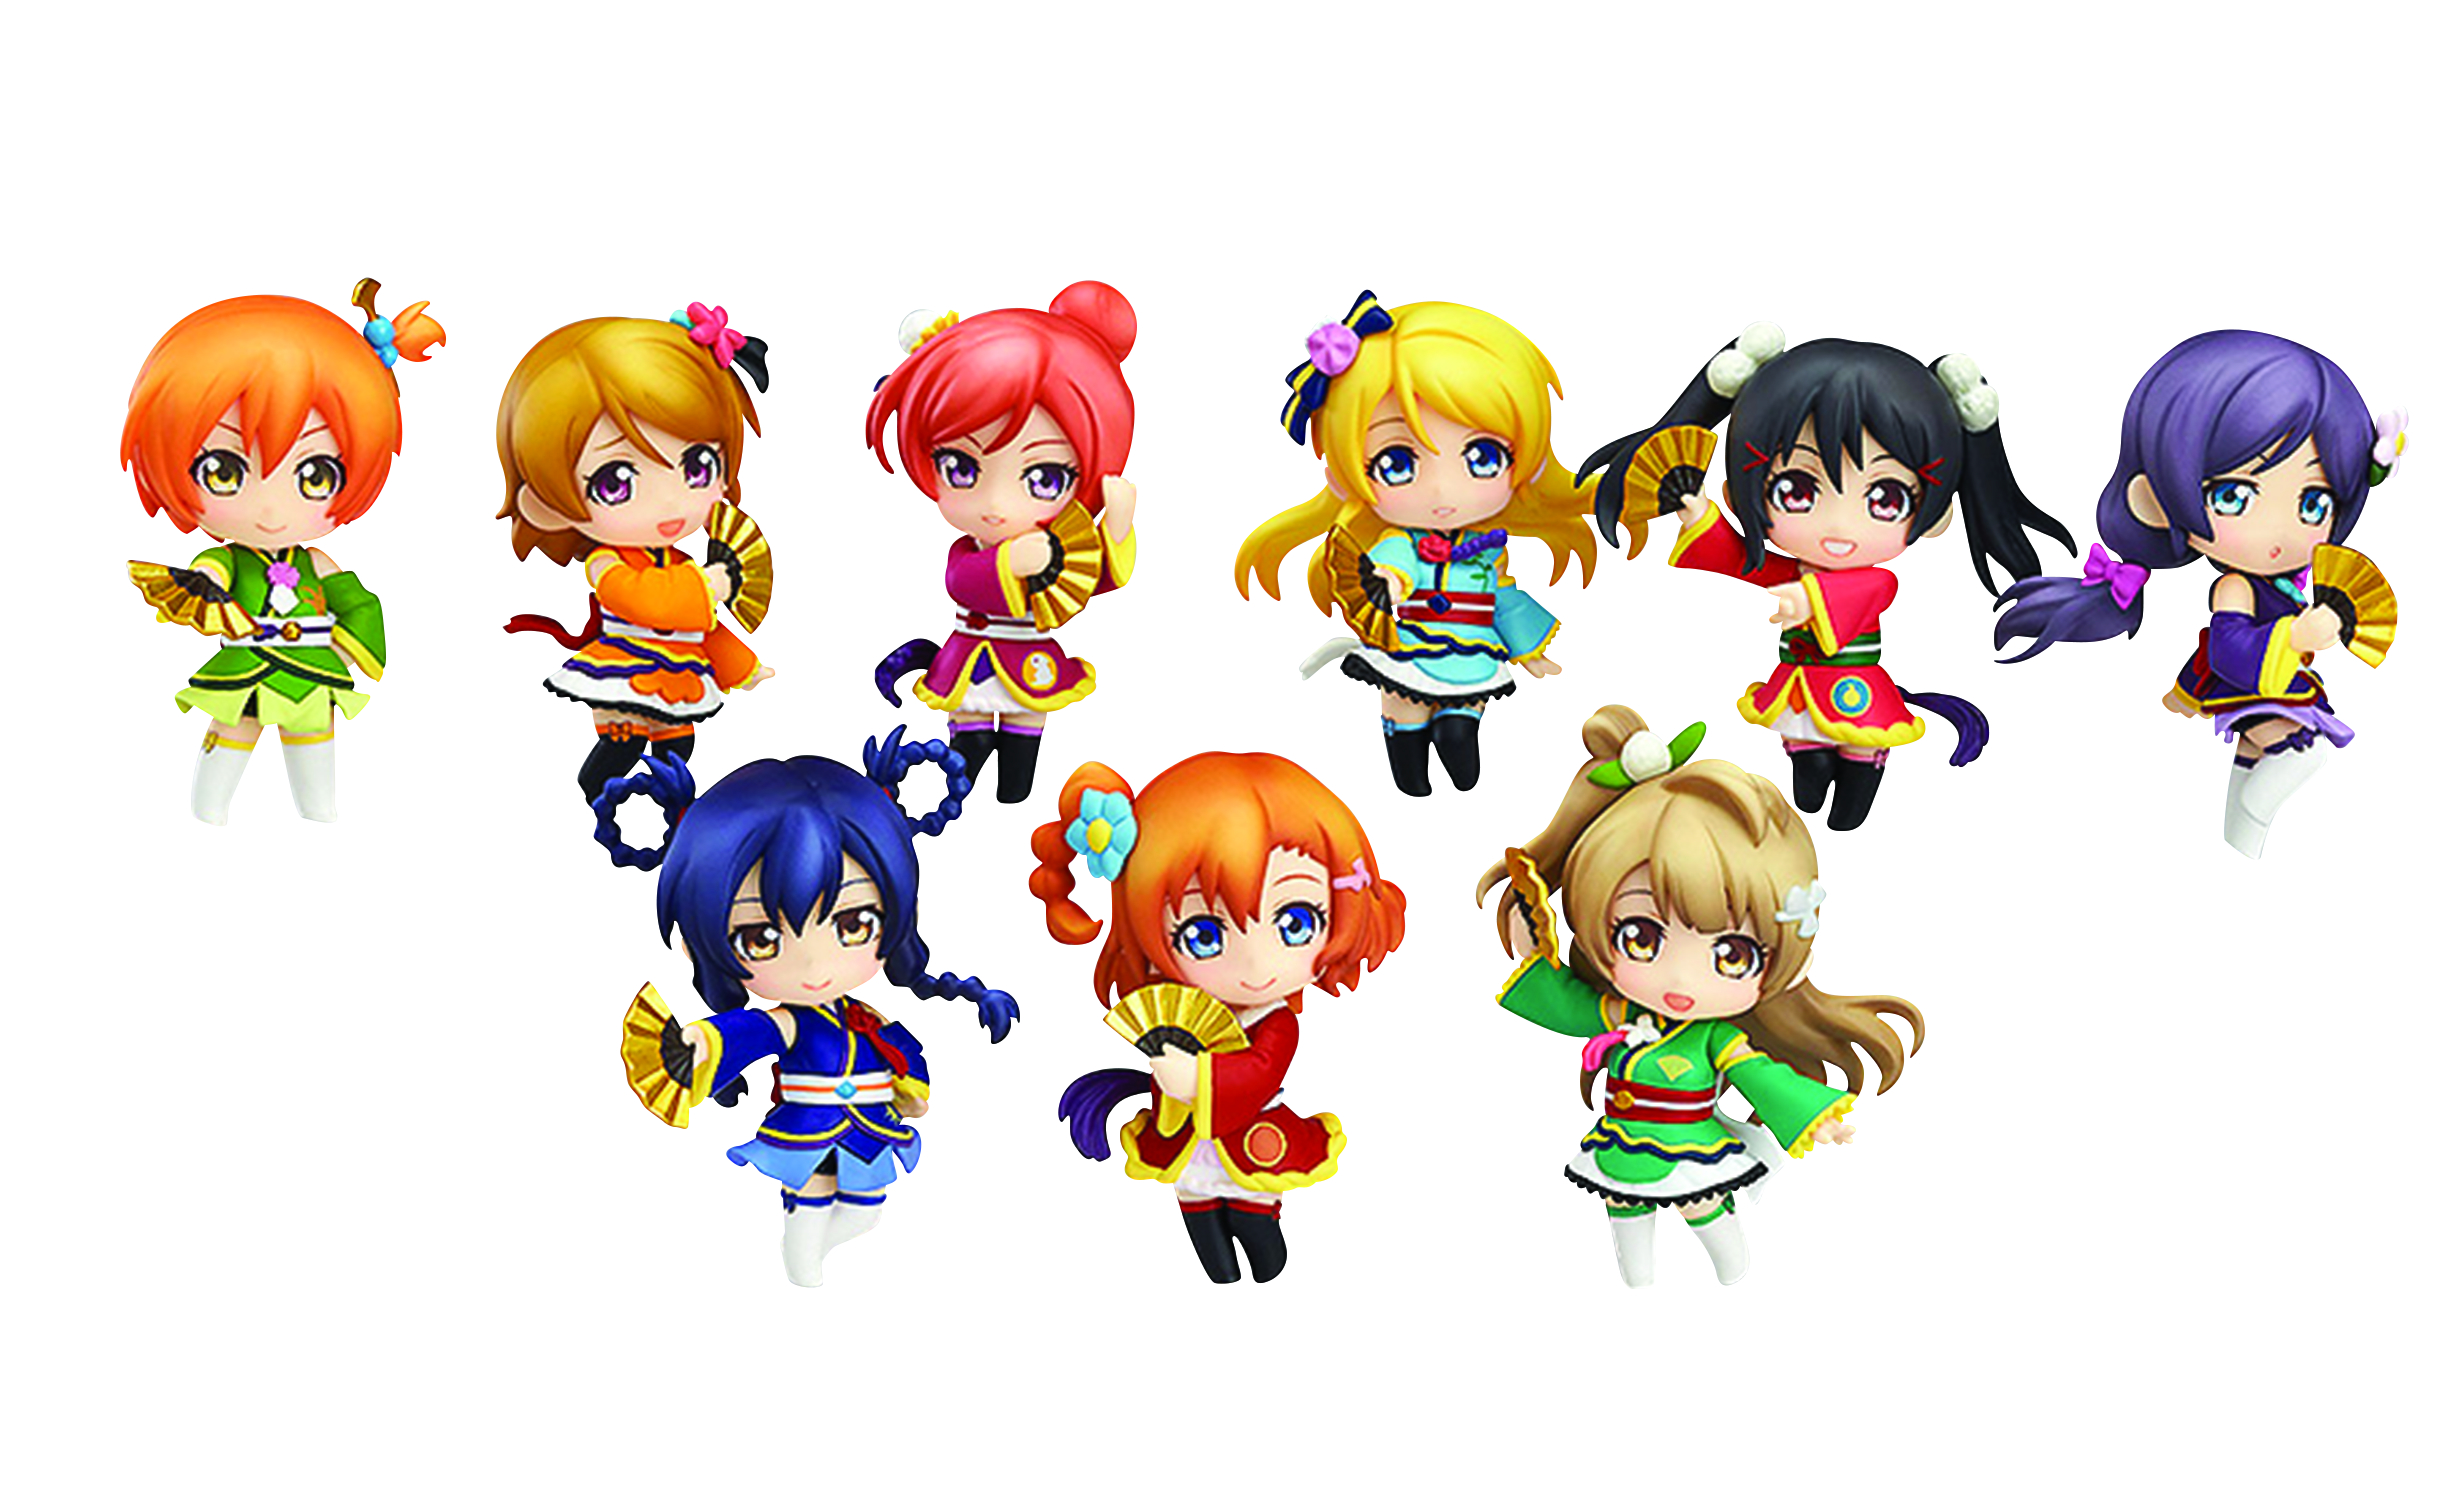 LOVE LIVE NENDOROID PETITE TRADING STRAP 10PC DIS ANGEL VER